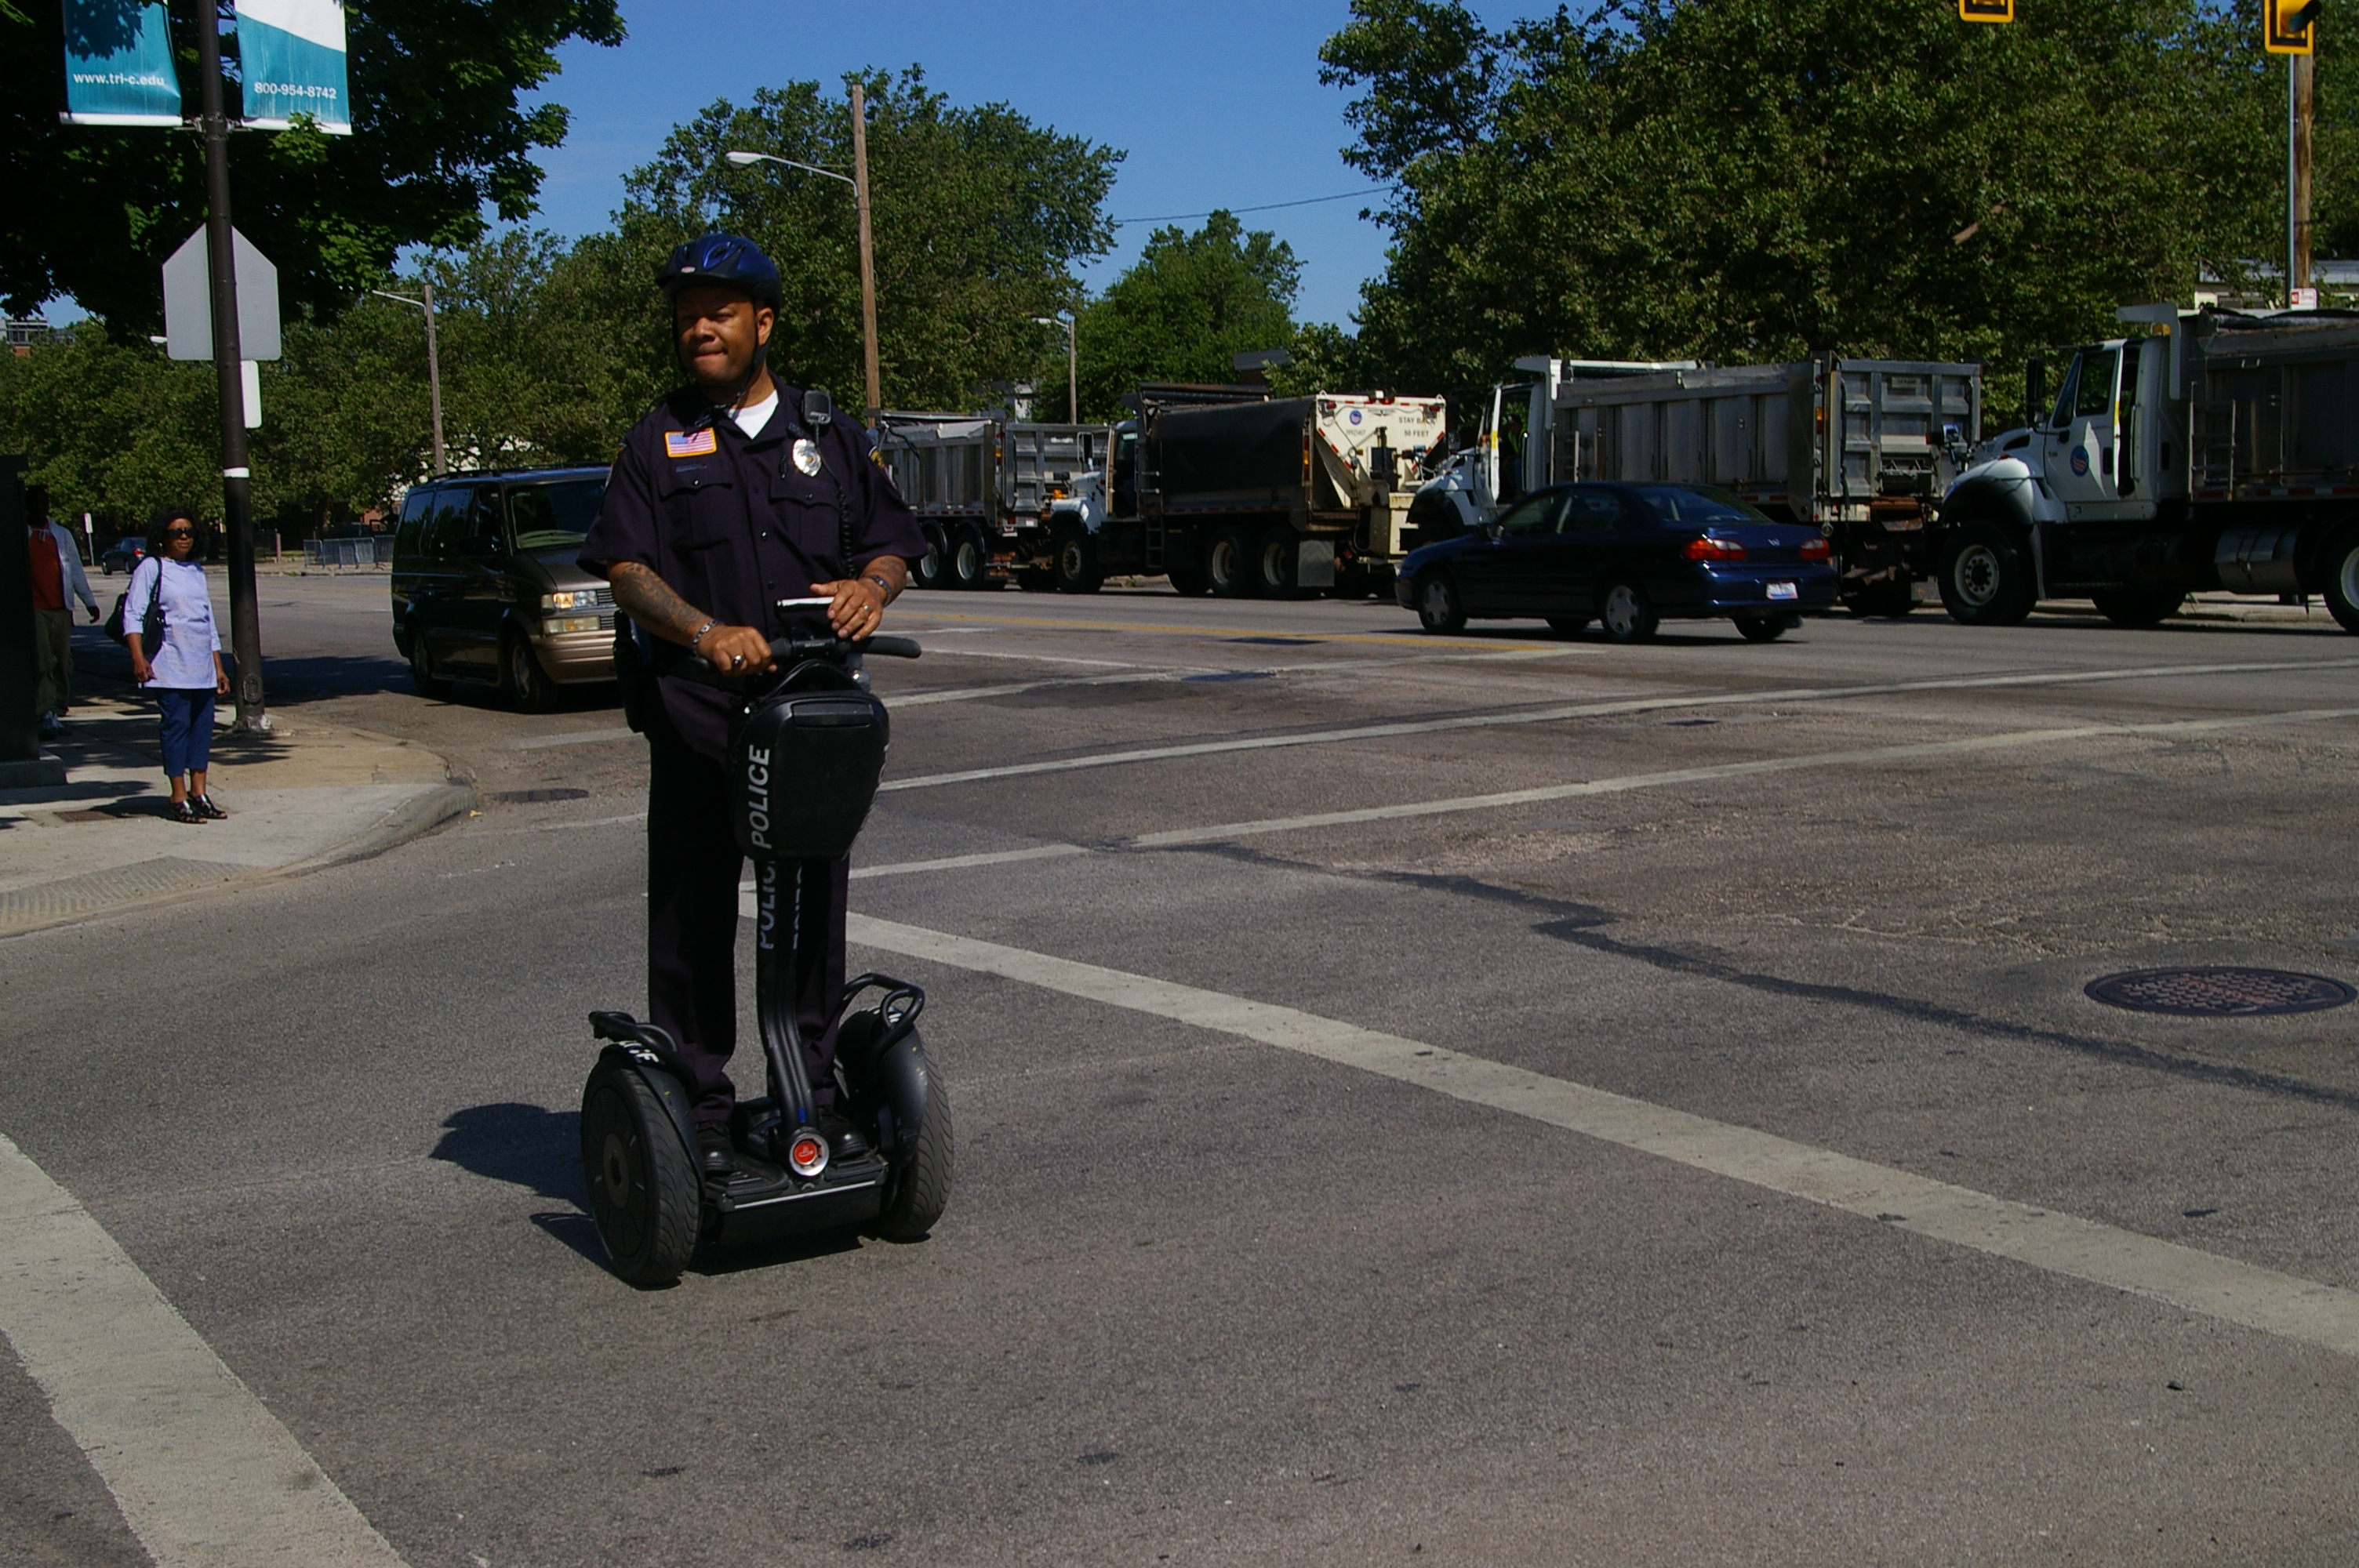 A policeman on a Segue monitors activity around the Presidential rally venue at the Tri-C Metro campus, from 2012